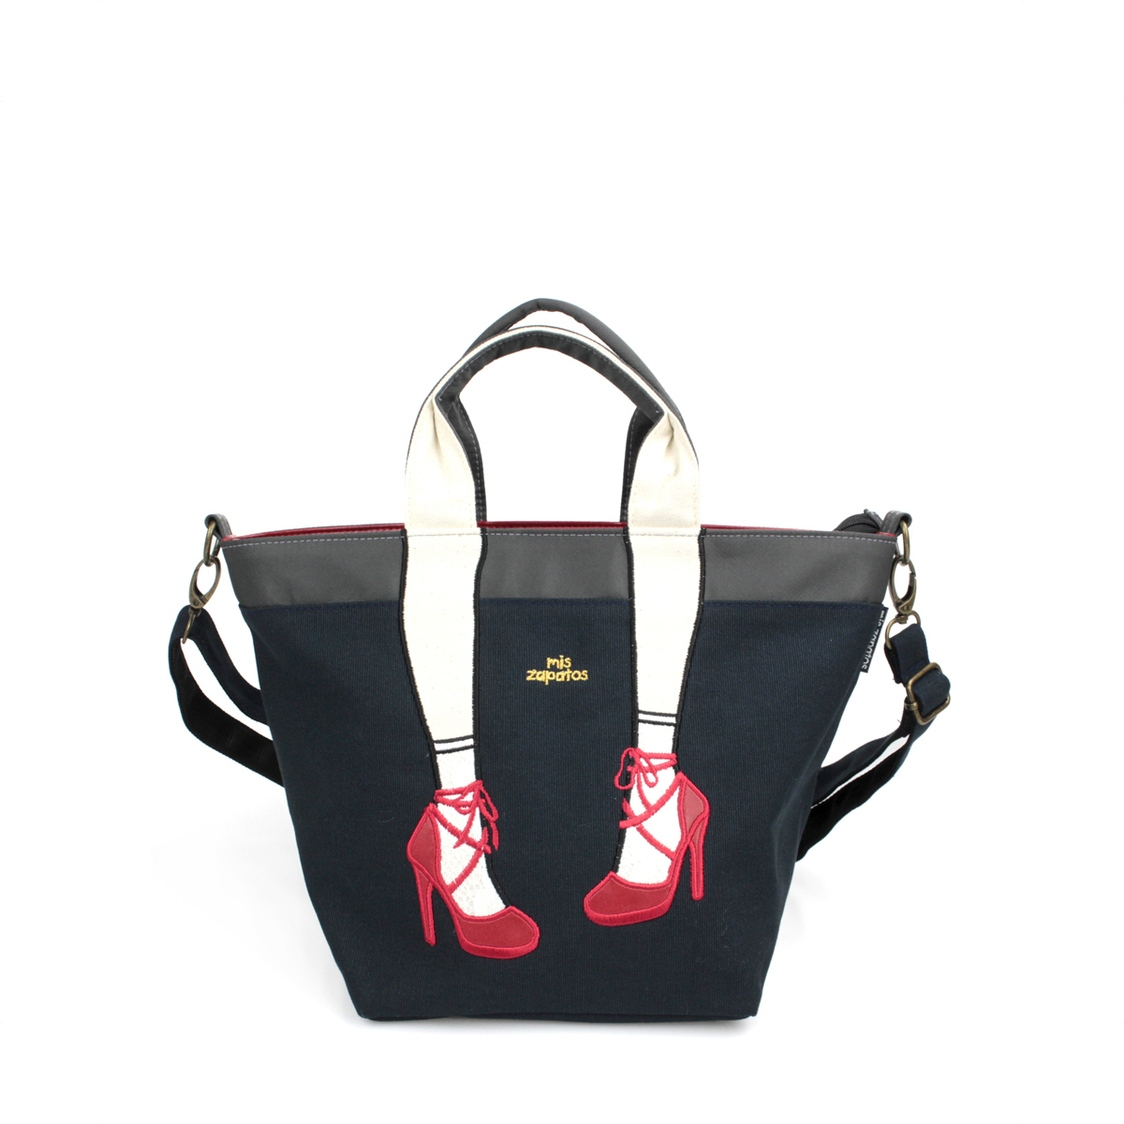 2-Way Use High Heels Slingbag Black